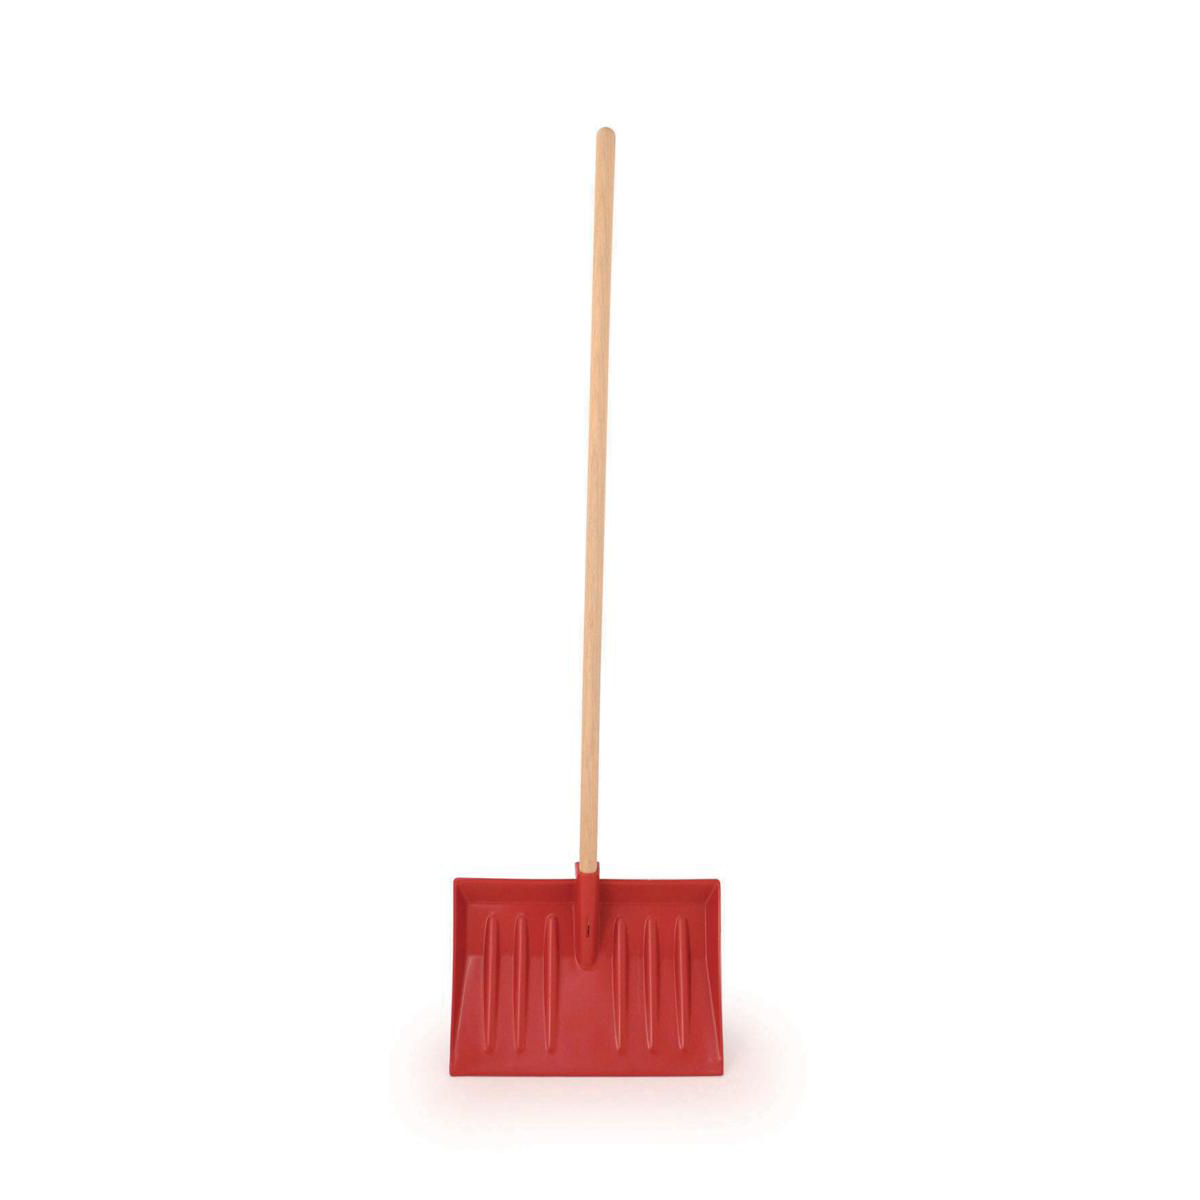 Image for Heavy Duty Shovel Polypropylene Blade 1220mm Wooden Handle